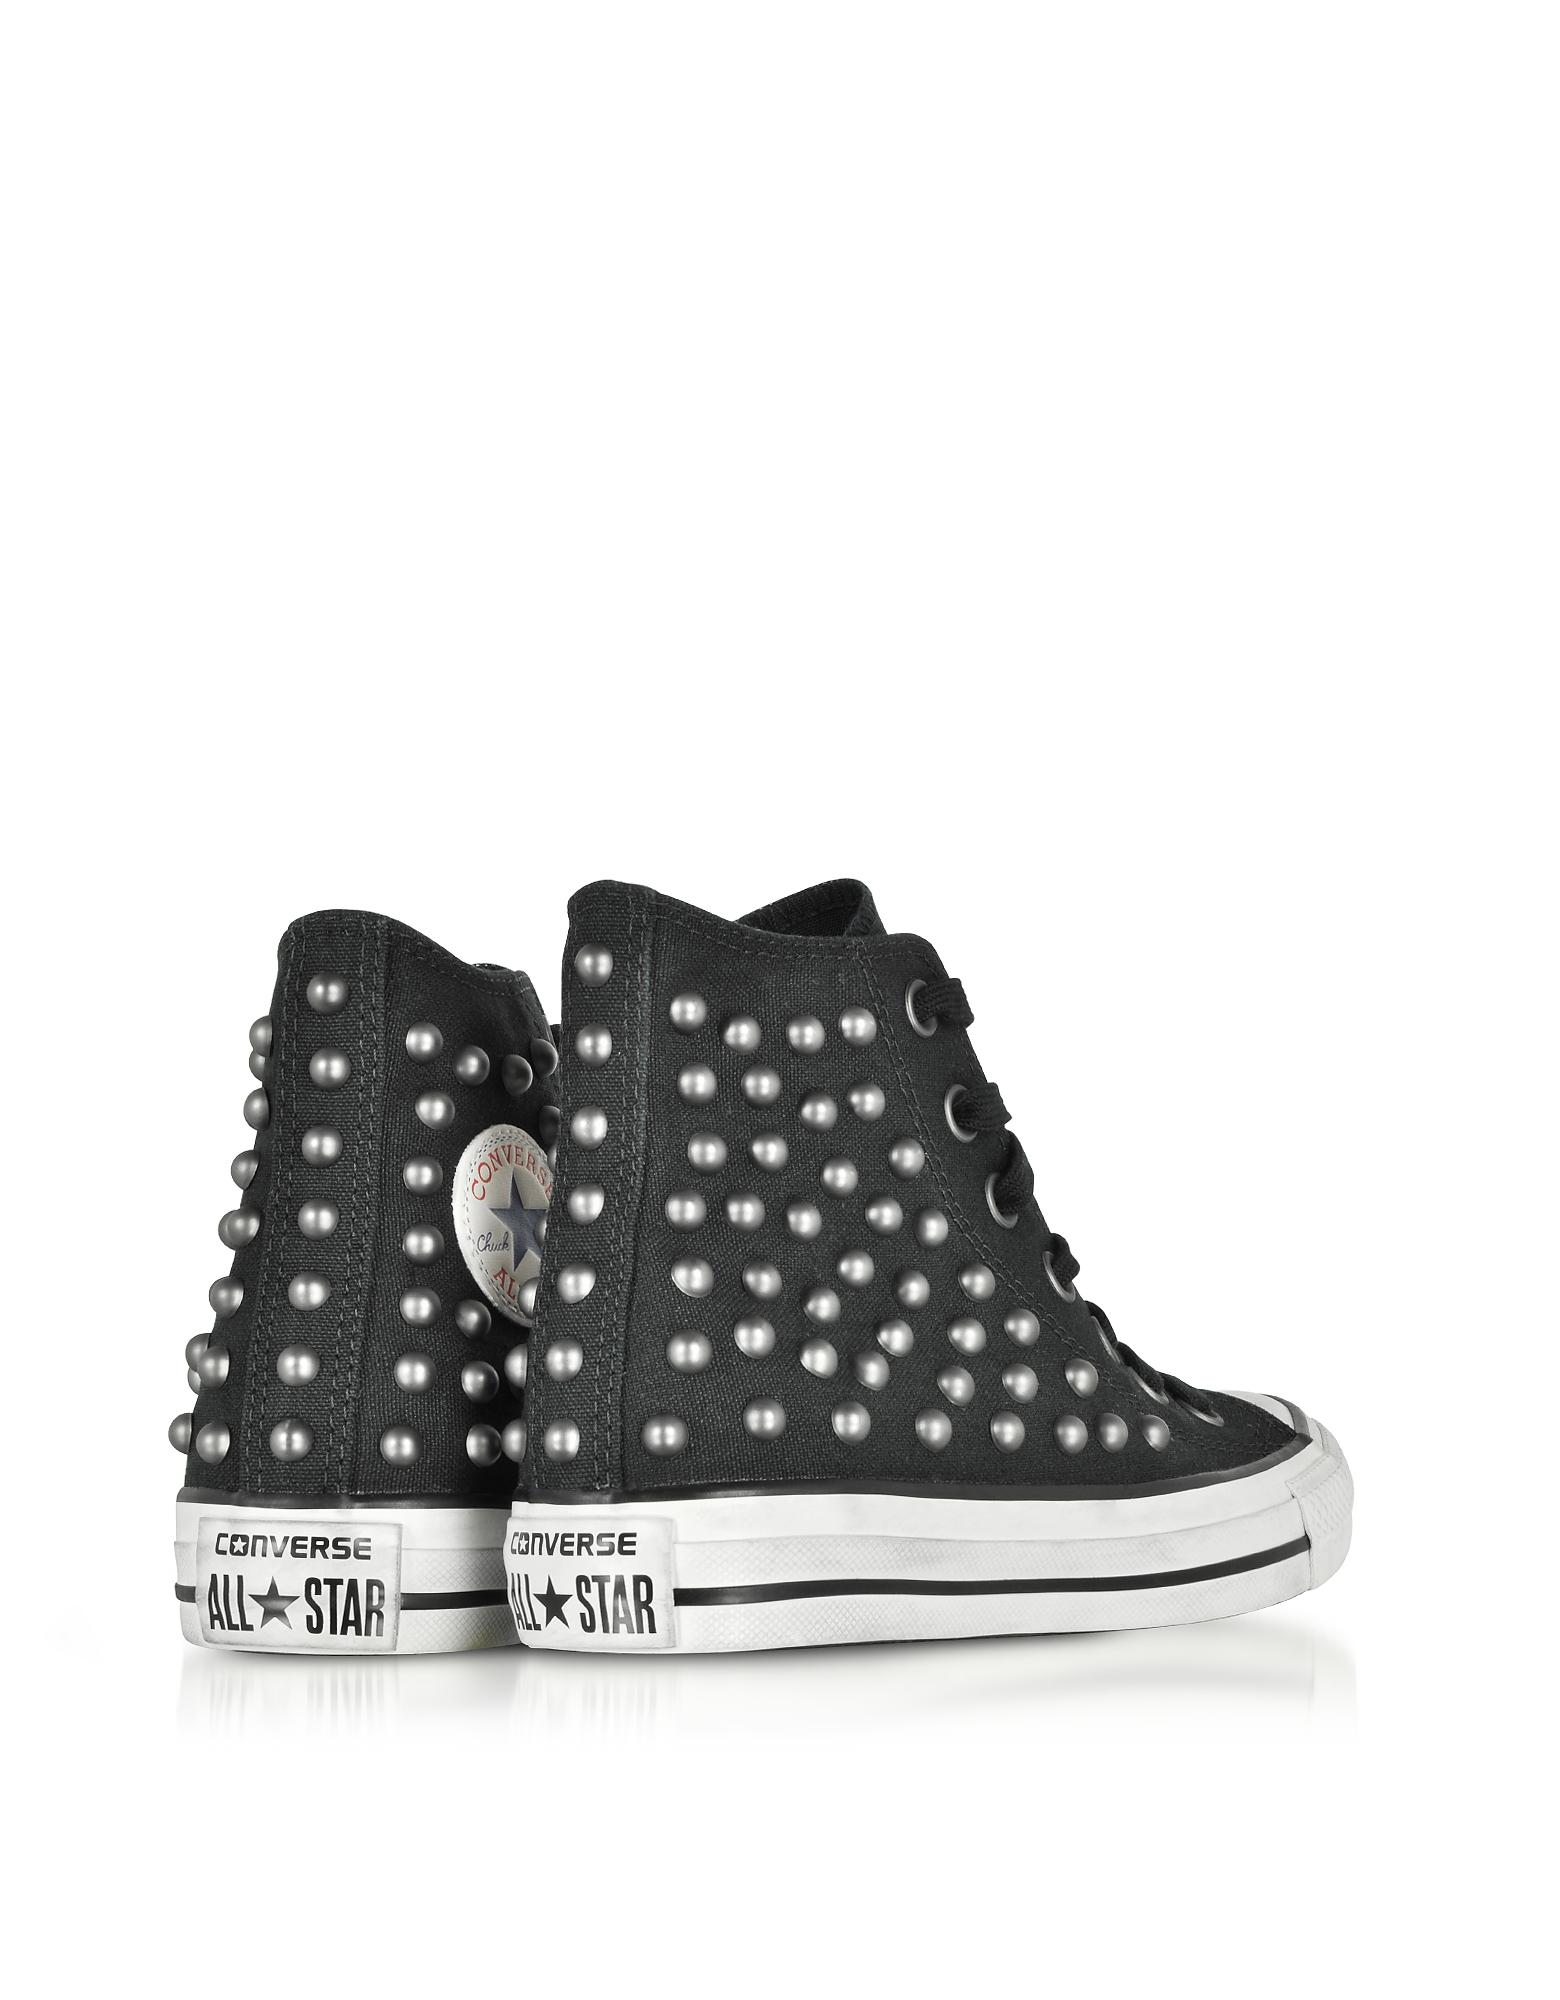 570389393bae Converse - Chuck Taylor All Star High Black Studded Canvas Snekakers - Lyst